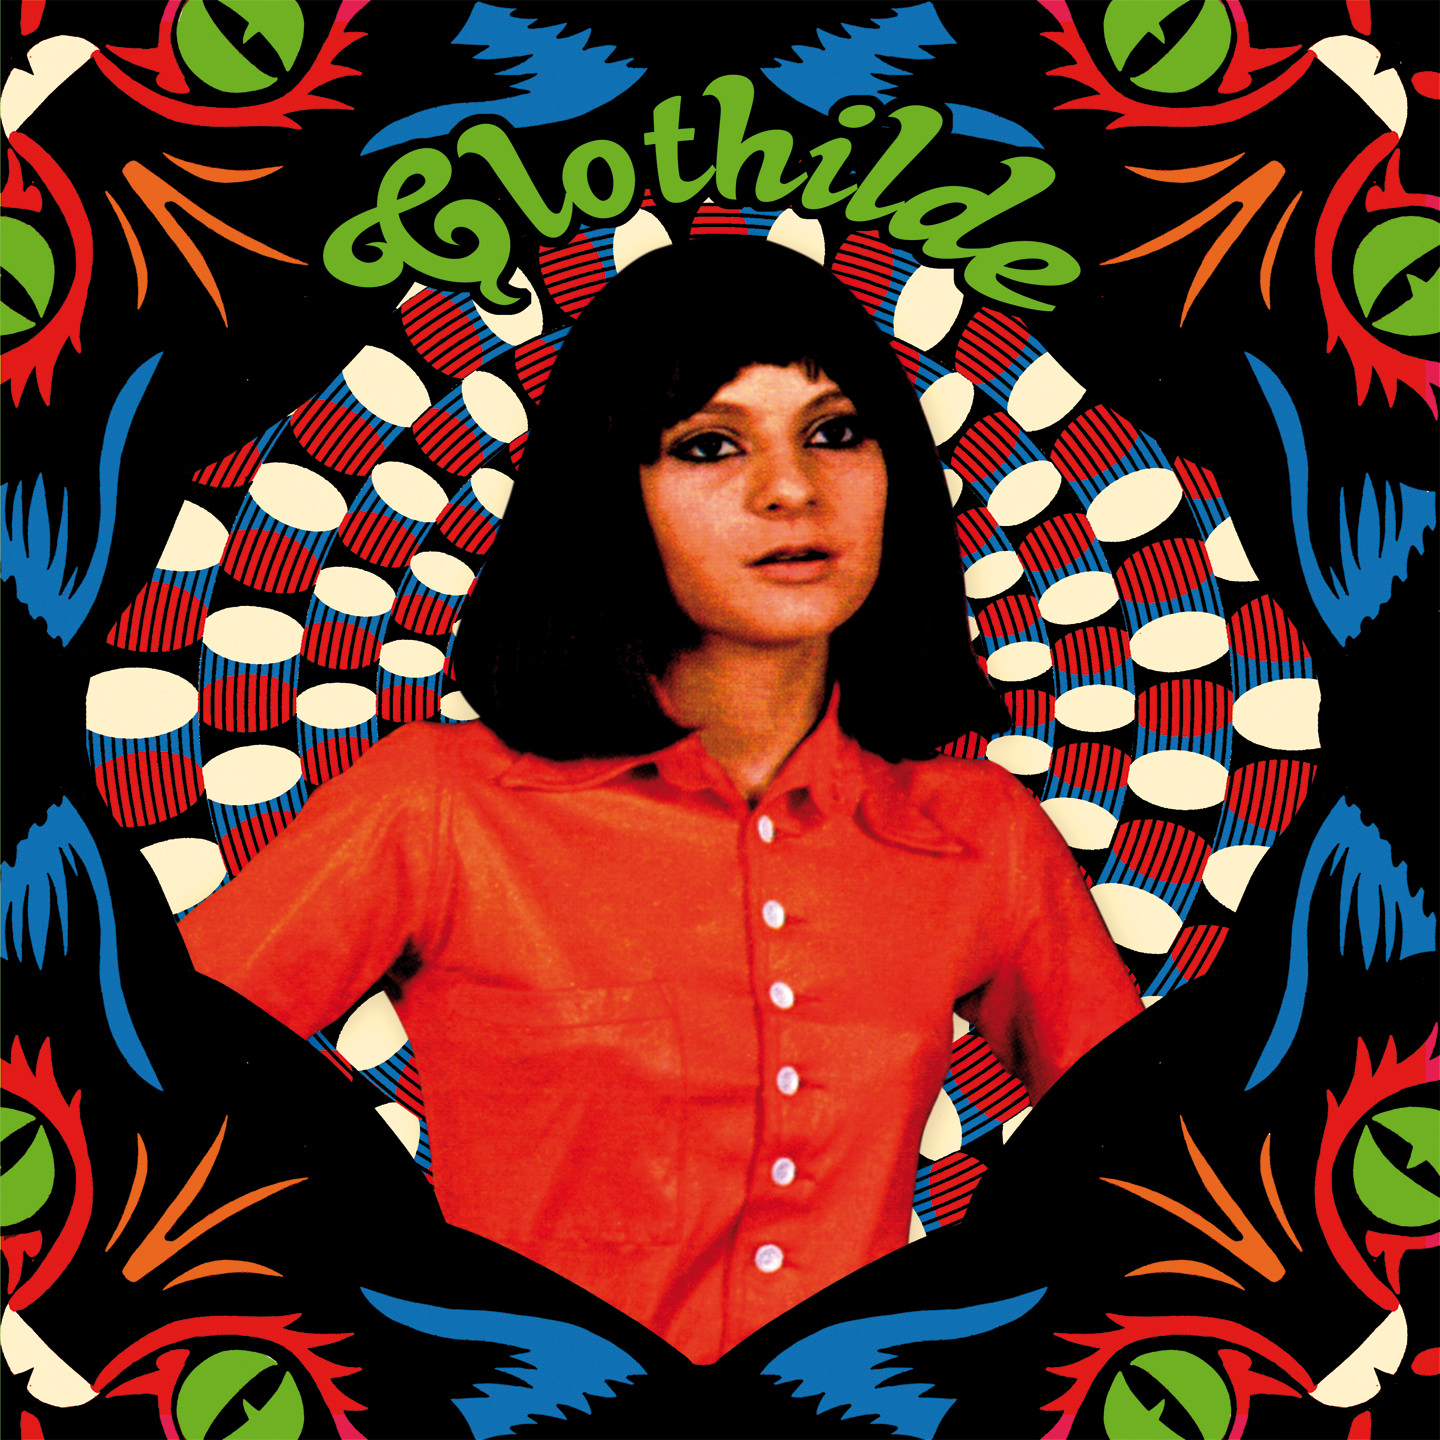 BB047 - CLOTHILDE - QUEEN OF THE FRENCH SWINGING MADEMOISELLE 1967